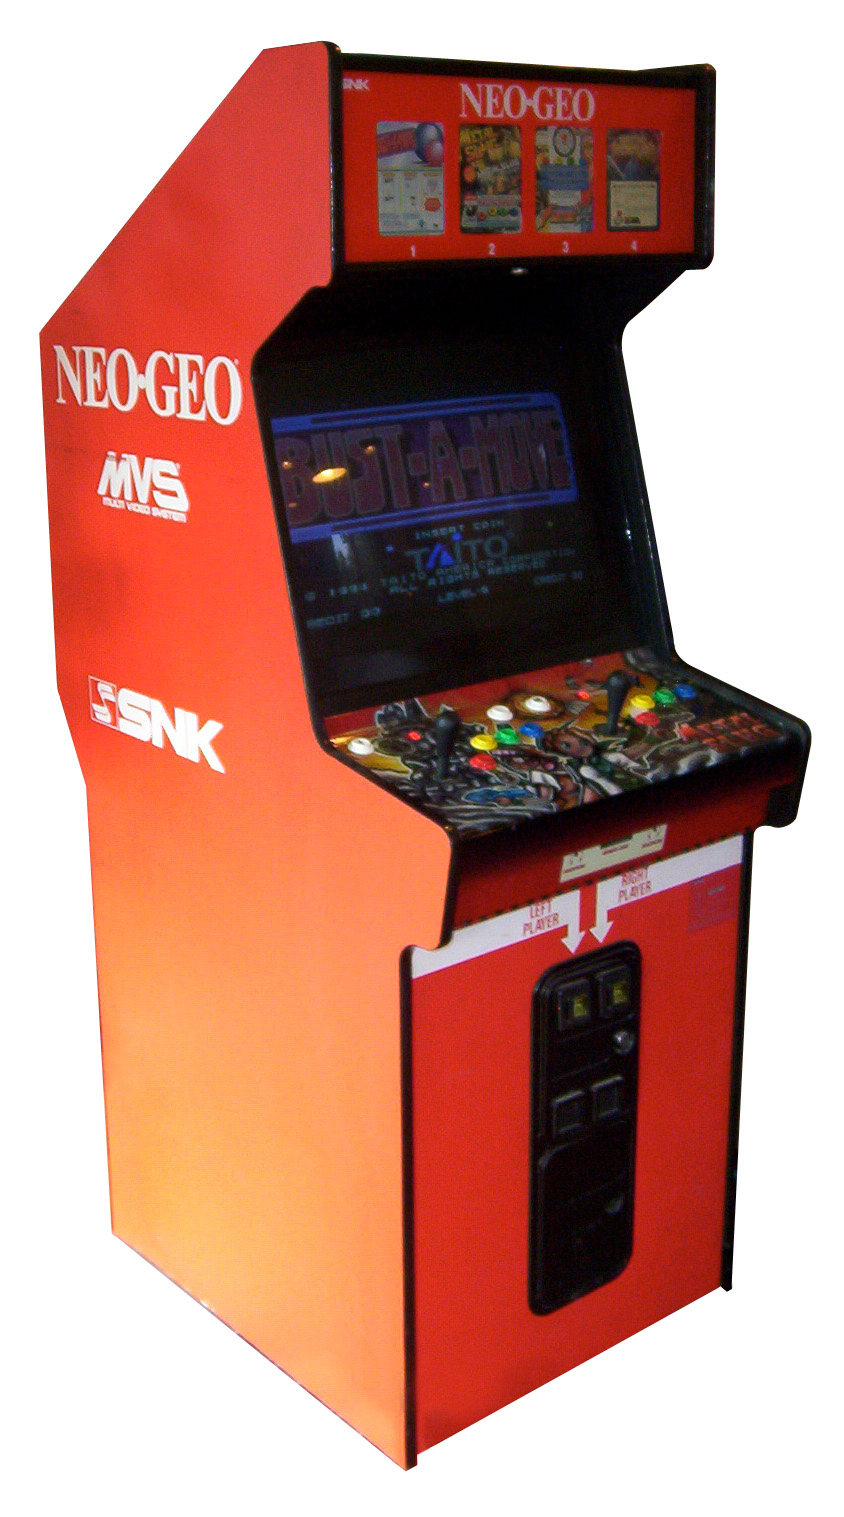 File:Neo Geo full on.png - Wikimedia Commons